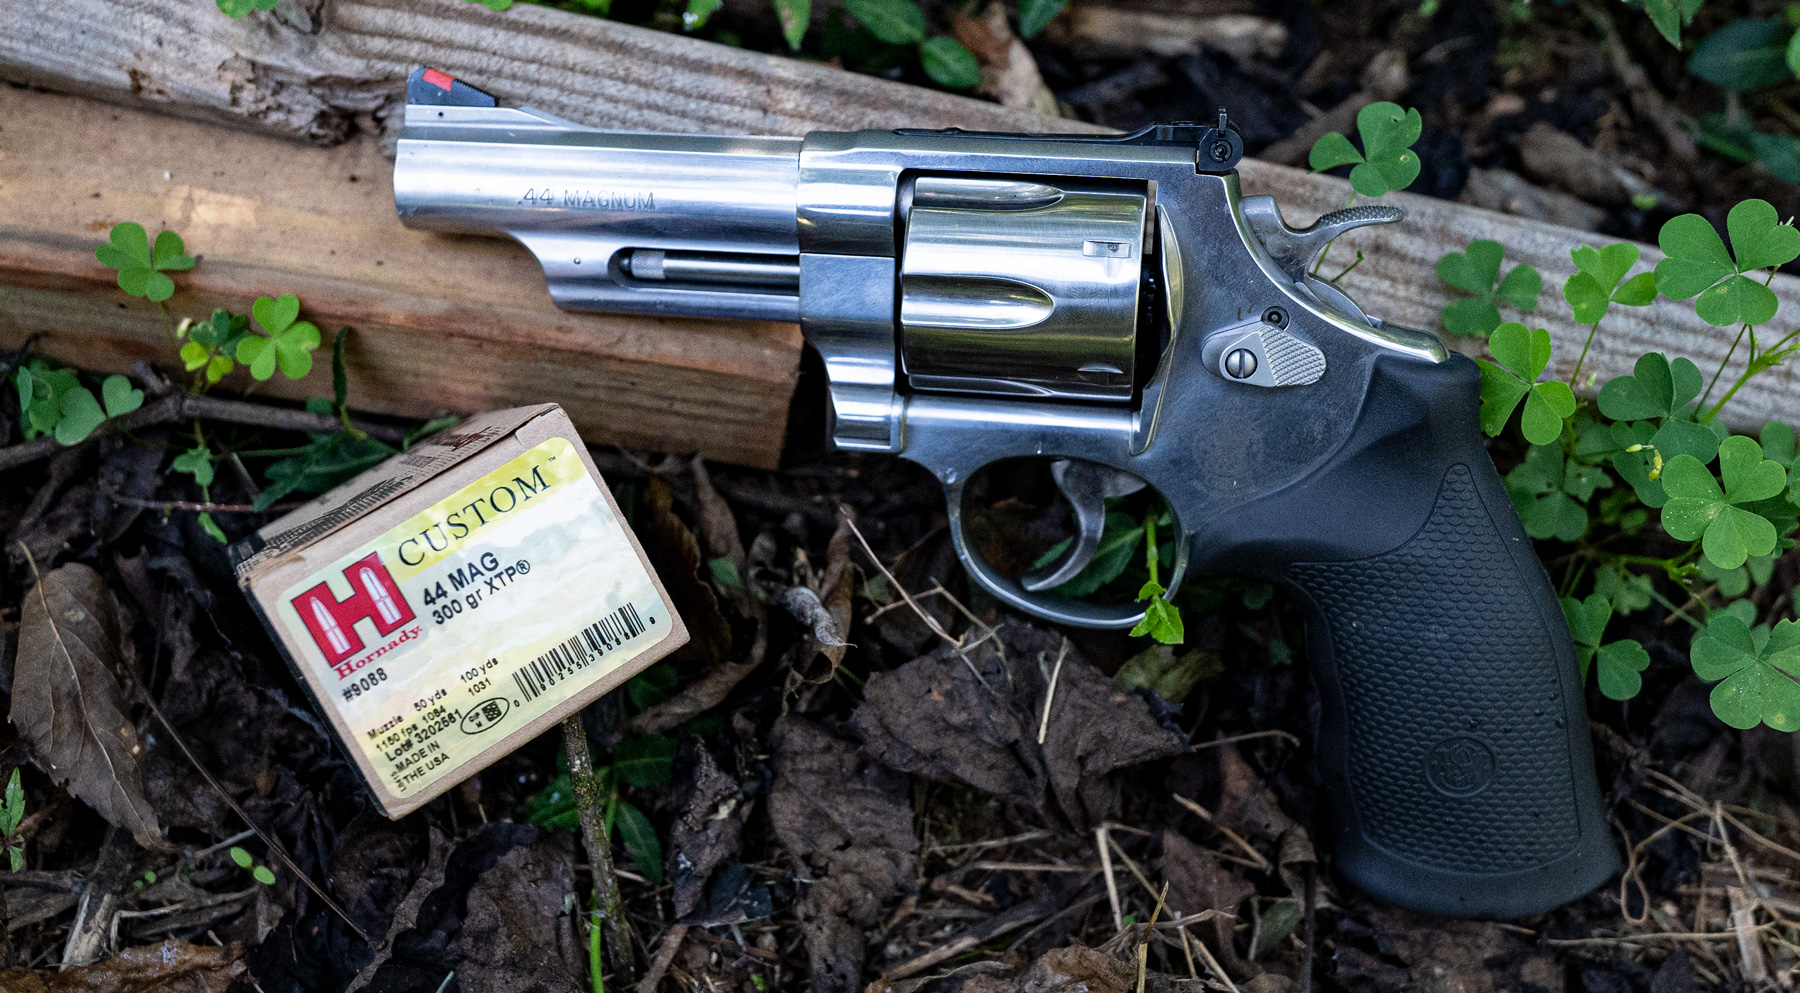 A Smith & Wesson 44 magnum revolver with Hornady ammunition